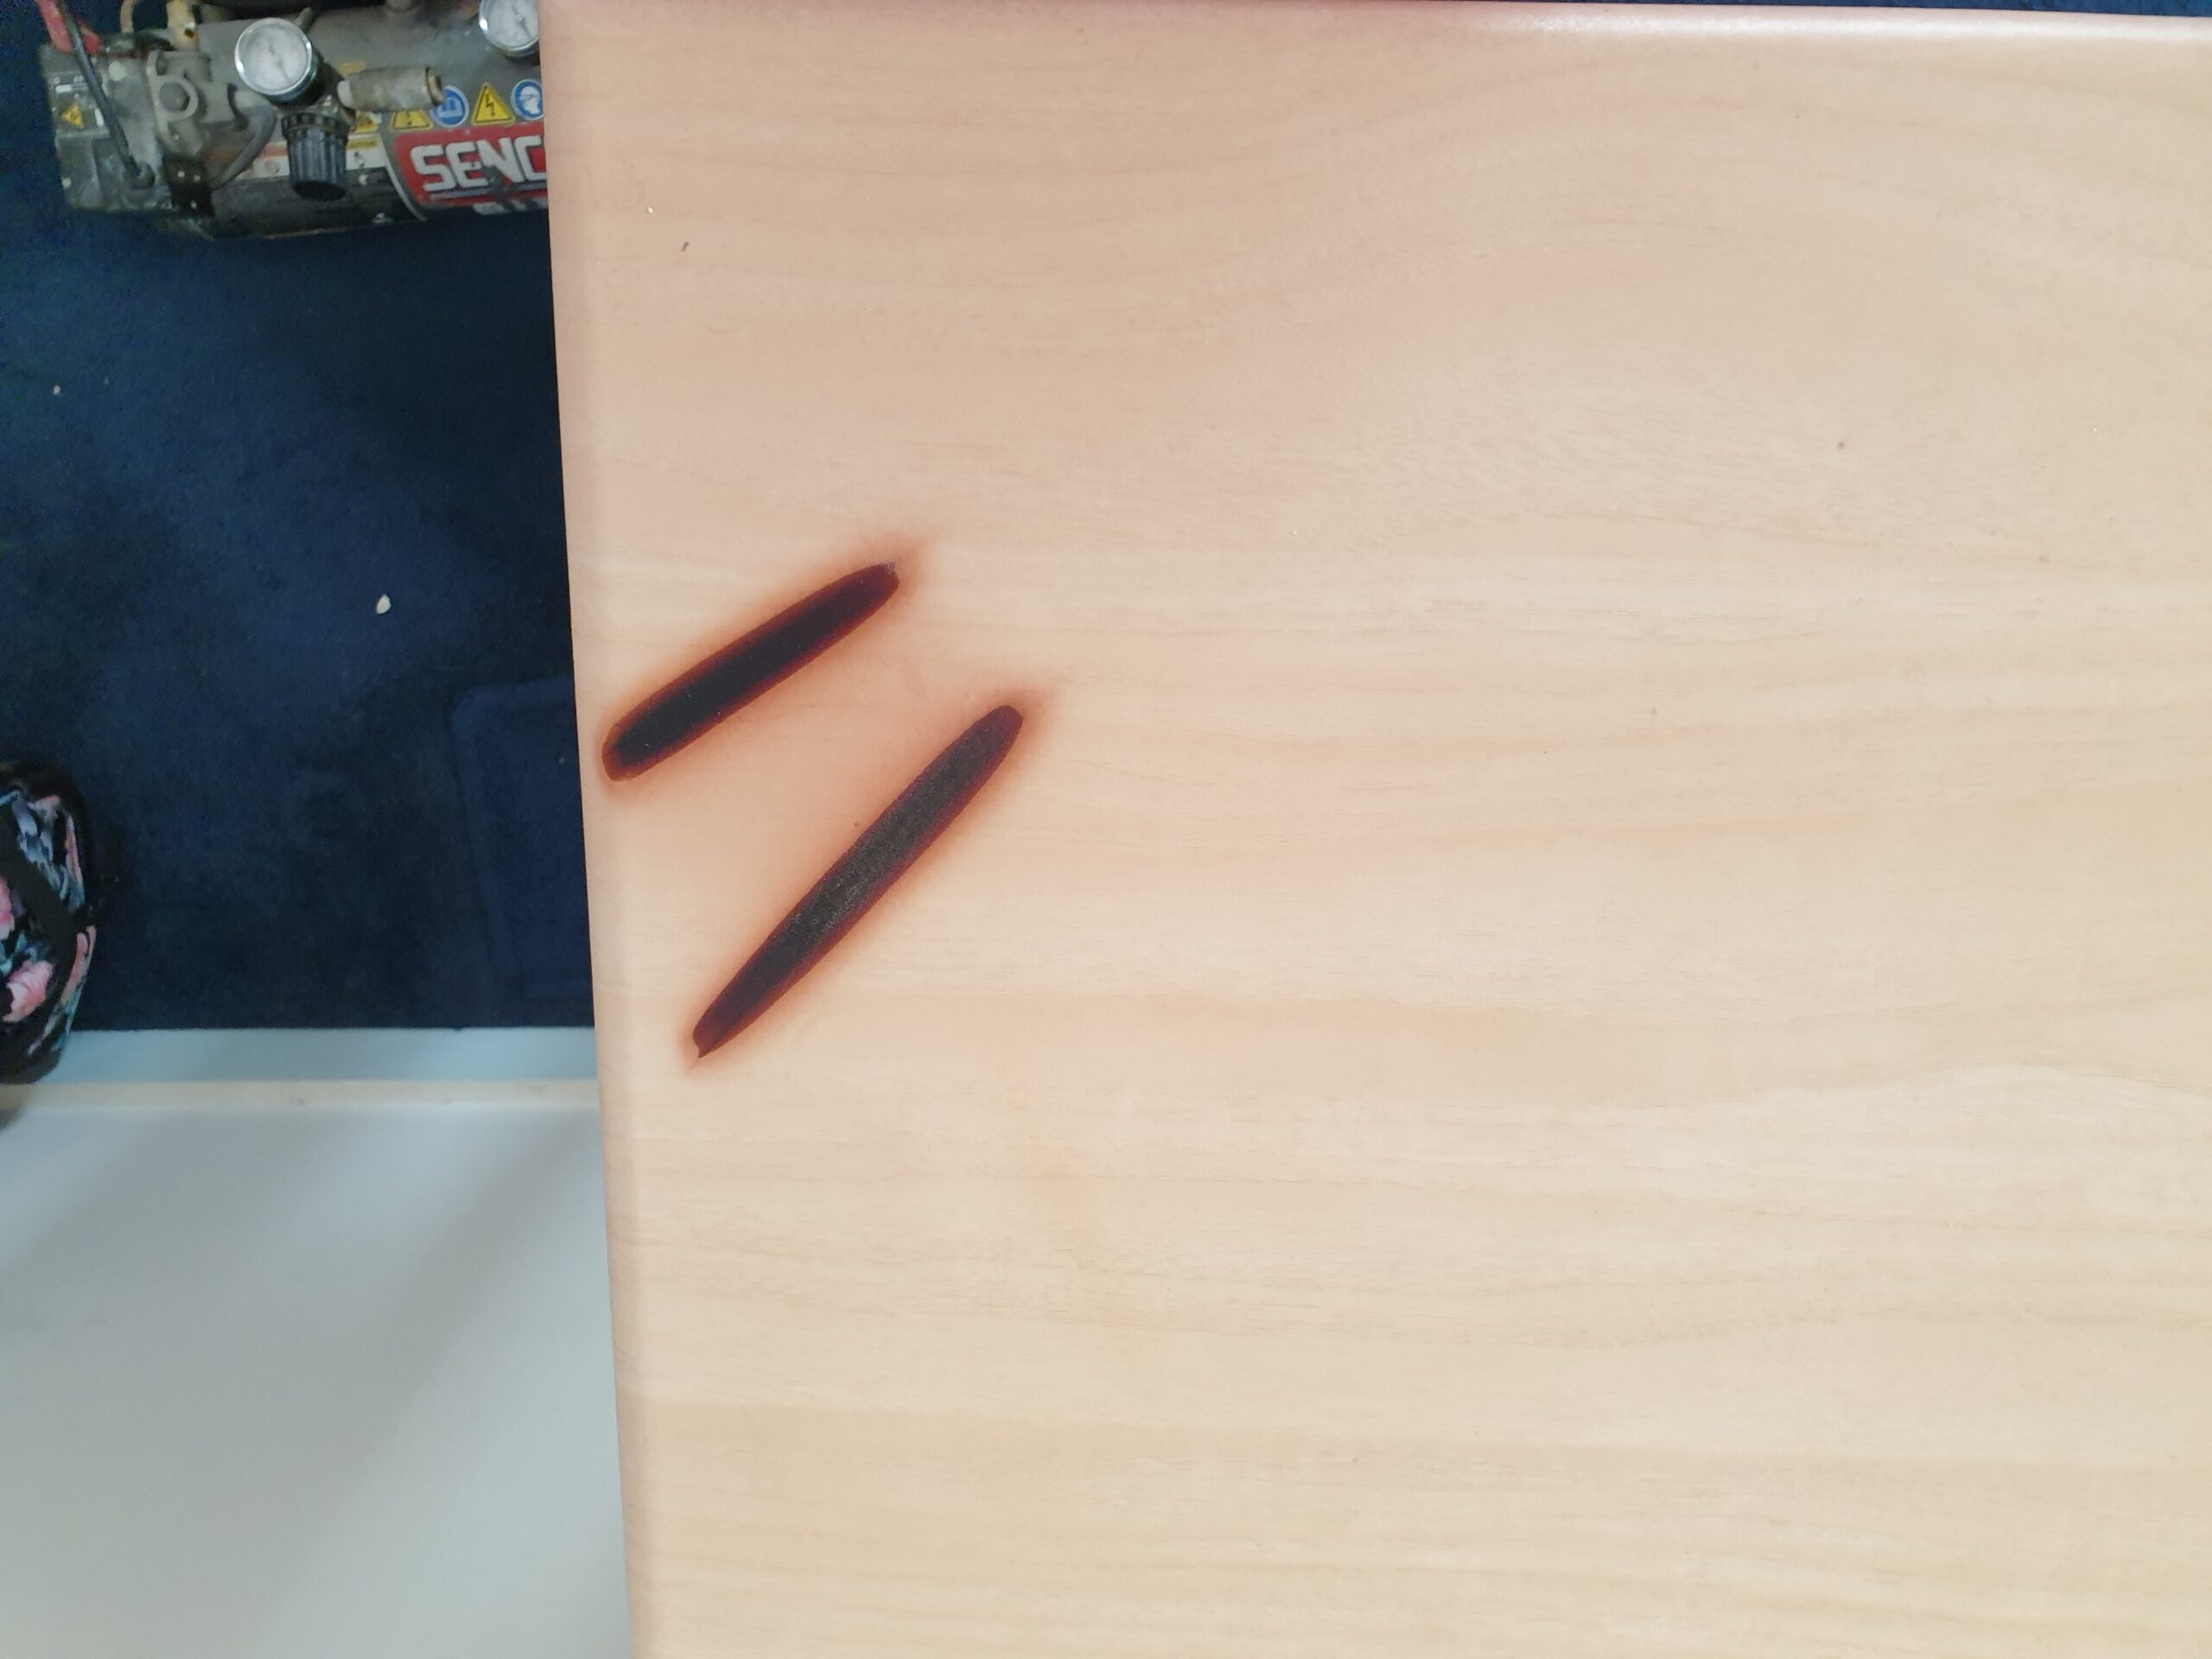 BEDROOM FURNITURE STRAIGHTENER BURN MARK CHIP SCRATCH DENT REPAIR MANCHESTER NAMCO REFURBS BEFORE